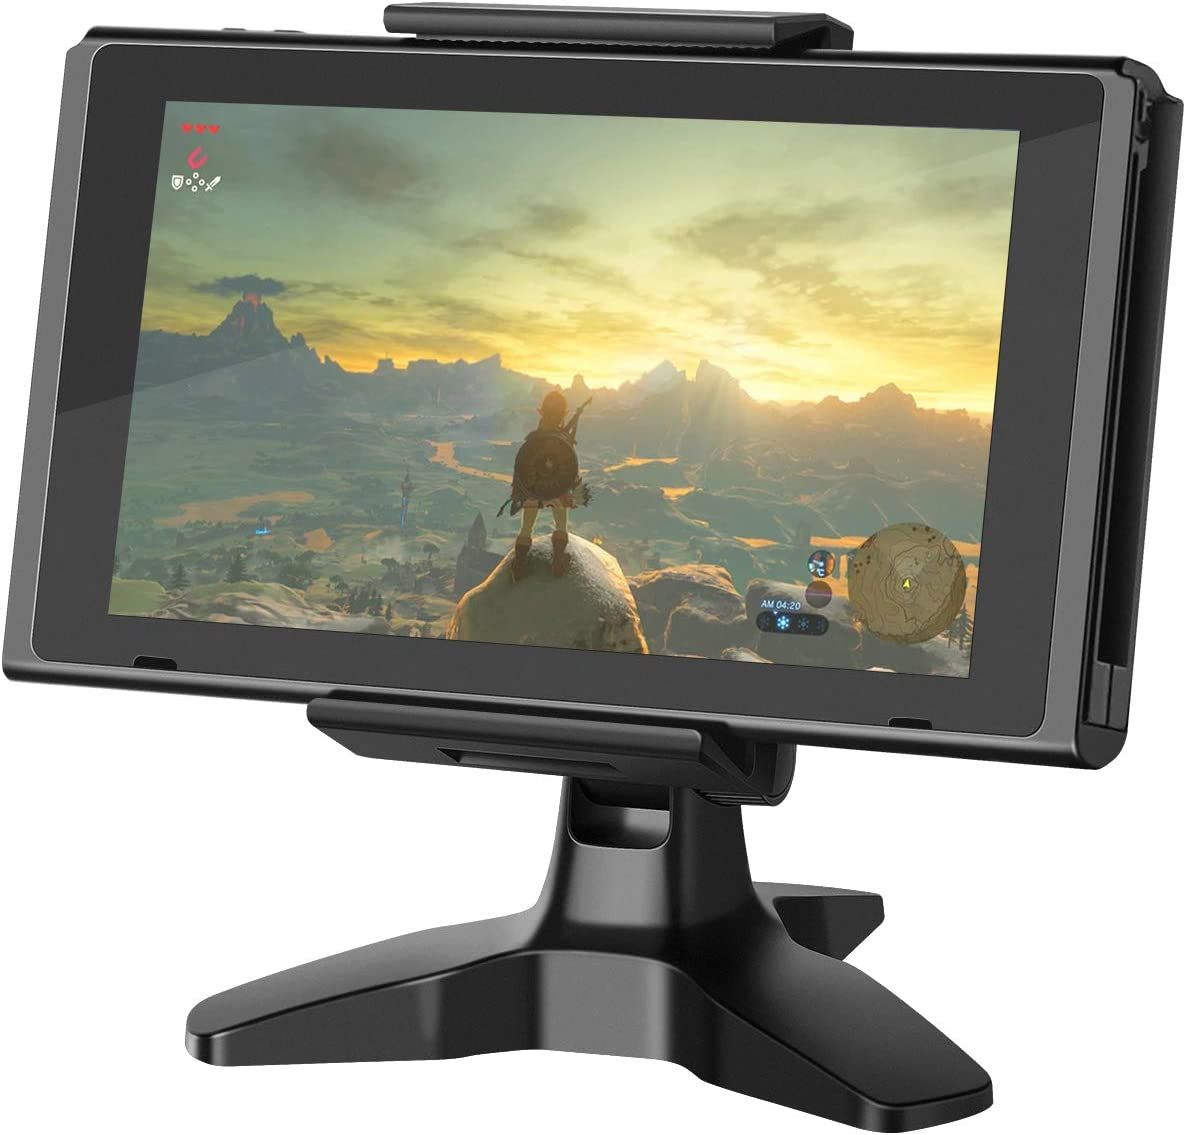 Stable Stand for Nintendo Switch, 360-Degree Adjustable Tablet Strong-Clamp Playstand, Heavy-Duty Base Desk Cell Phone Holder, Compatible with iPad iPhone Samsung Kindle Fire E-Reader by APPS2Car